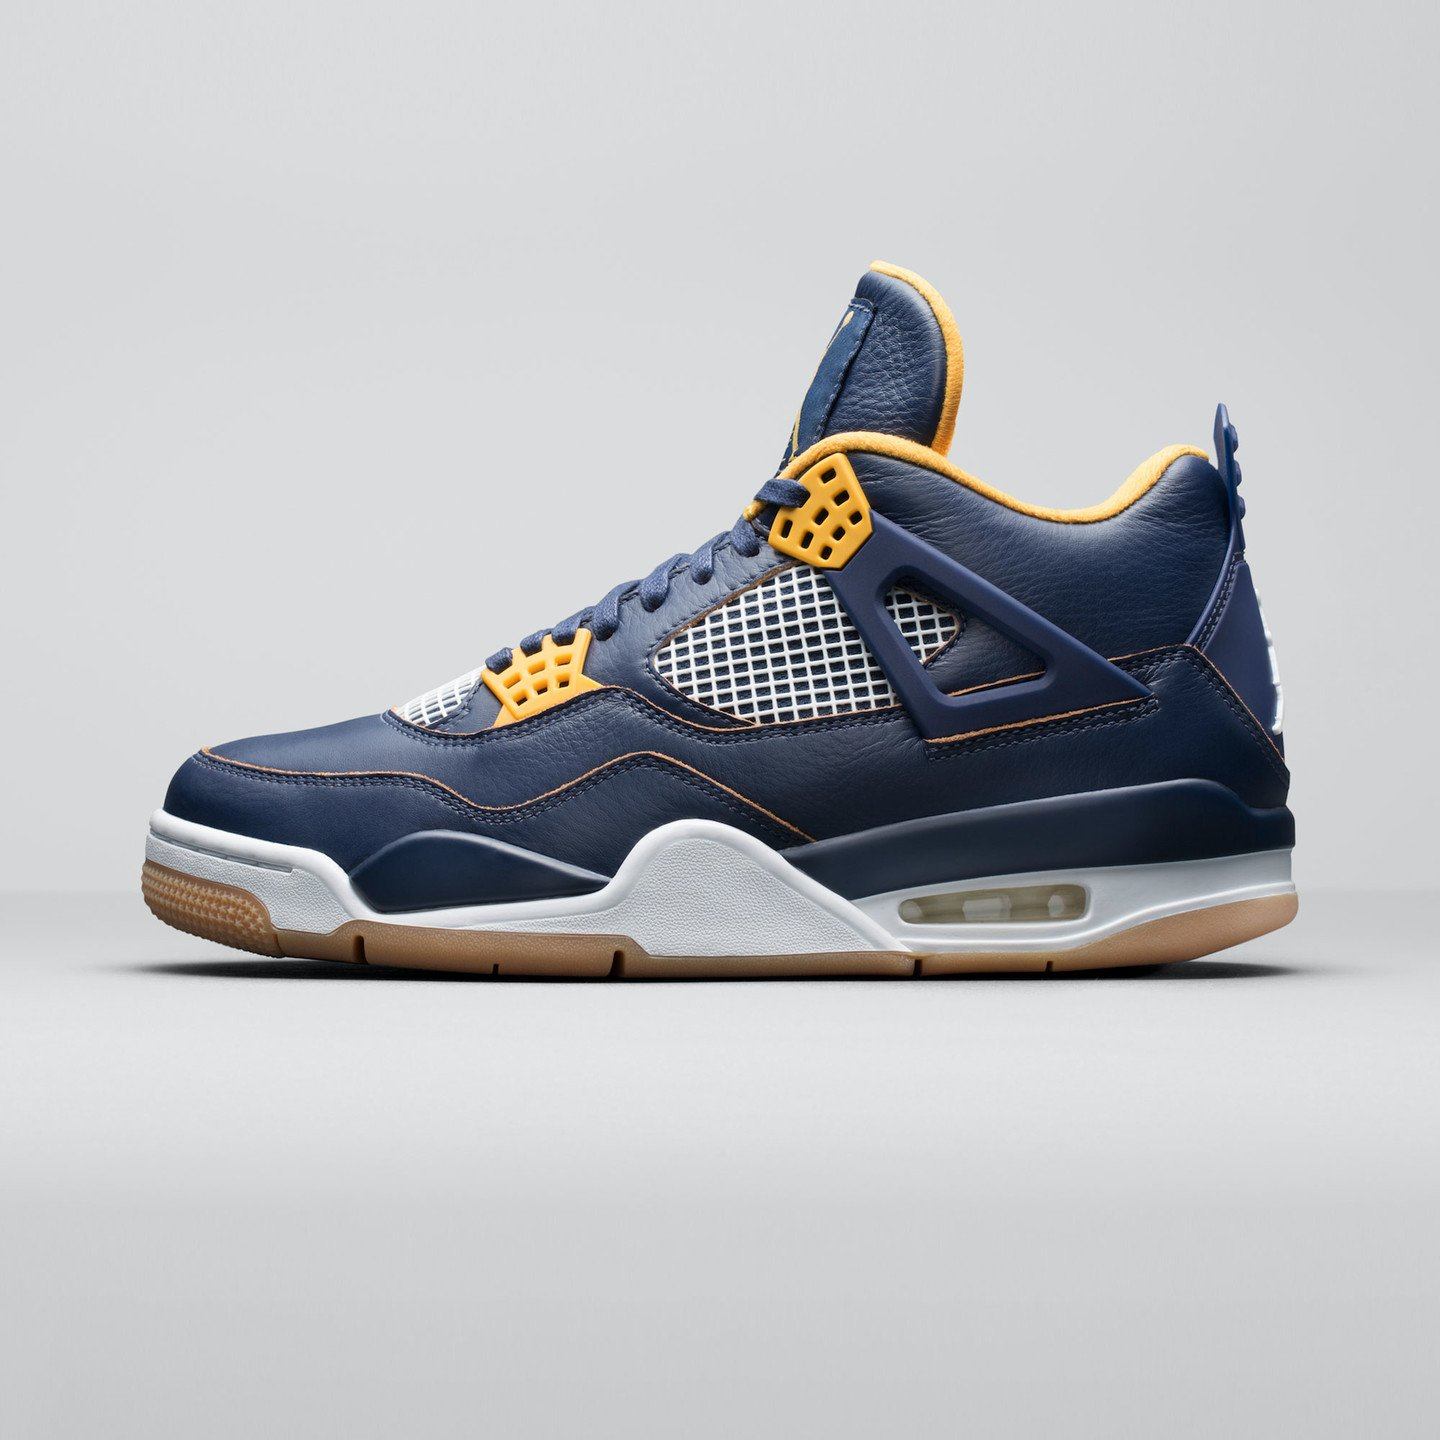 Jordan Air Jordan 4 Retro 'Dunk From Above' Midnight Navy / Golden Yellow / White 308497-425-44